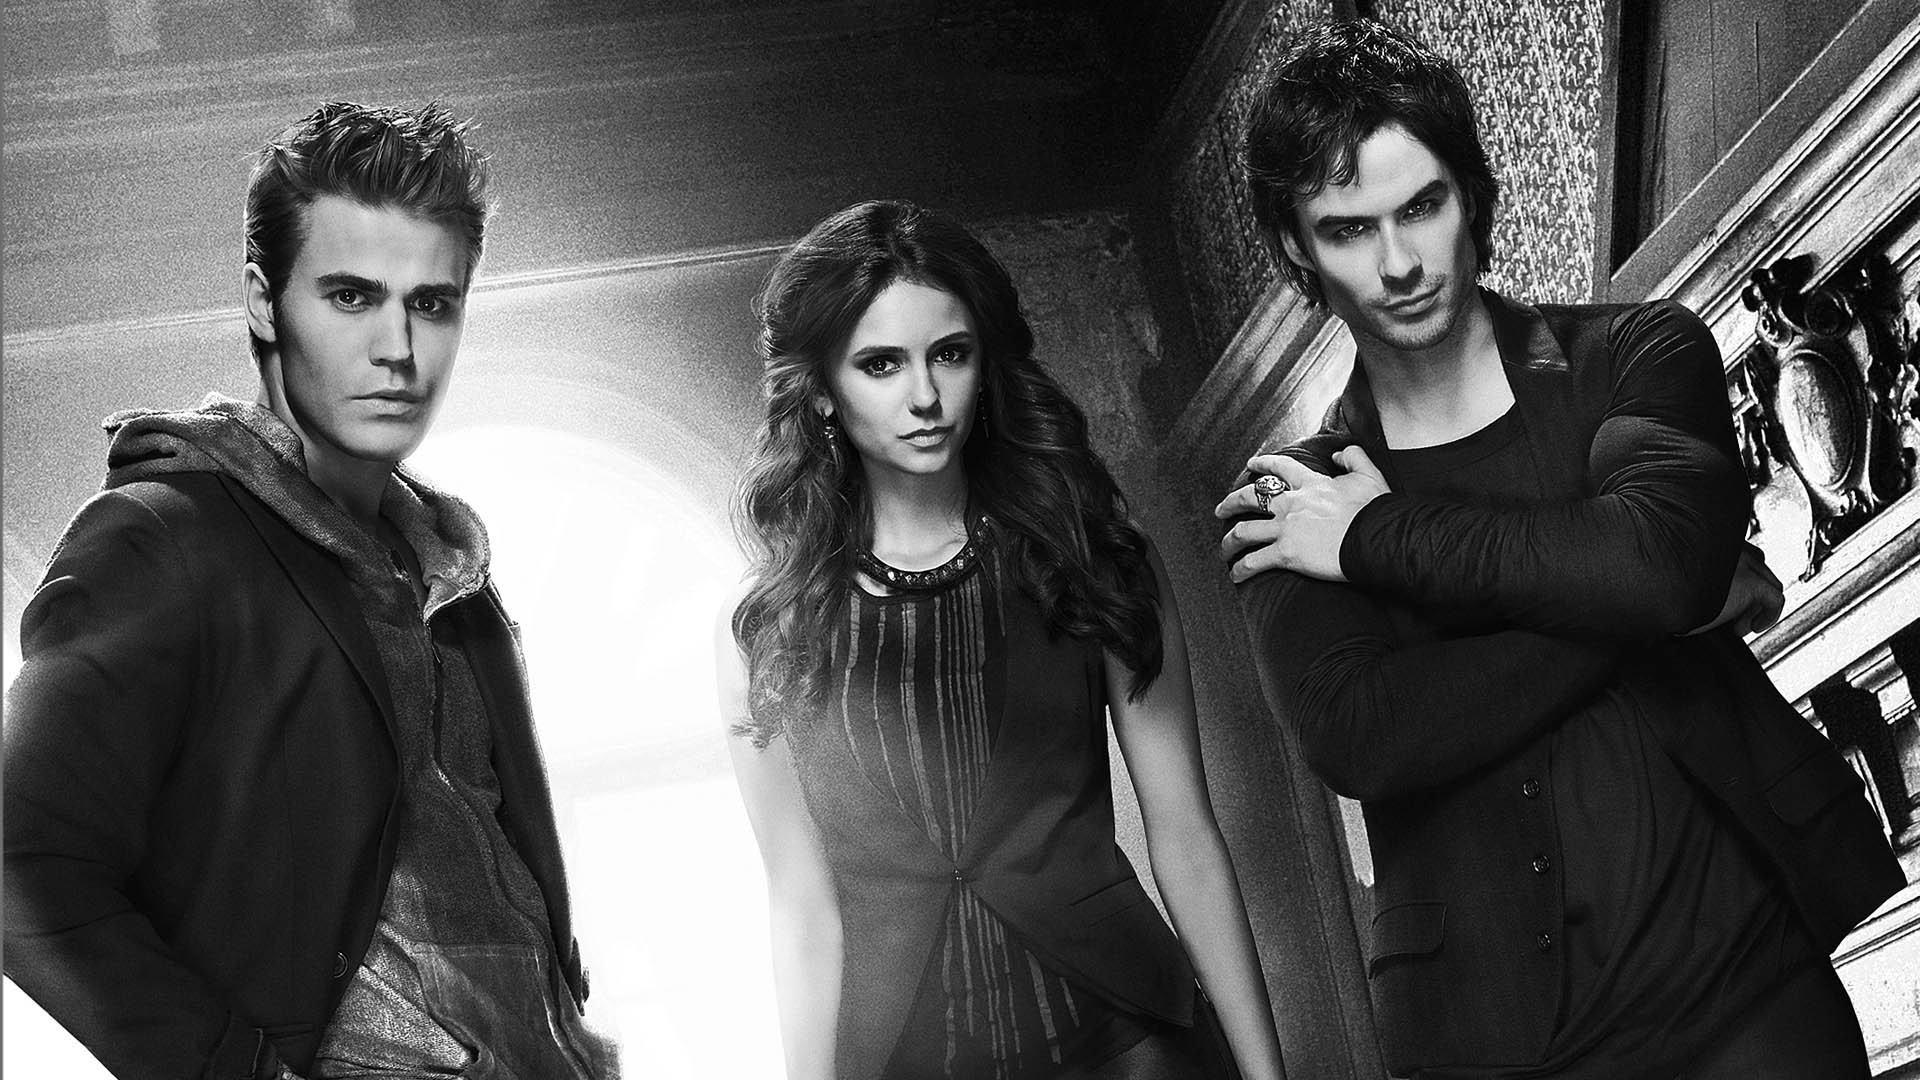 The Vampire Diaries Backgrounds, Pictures, Images